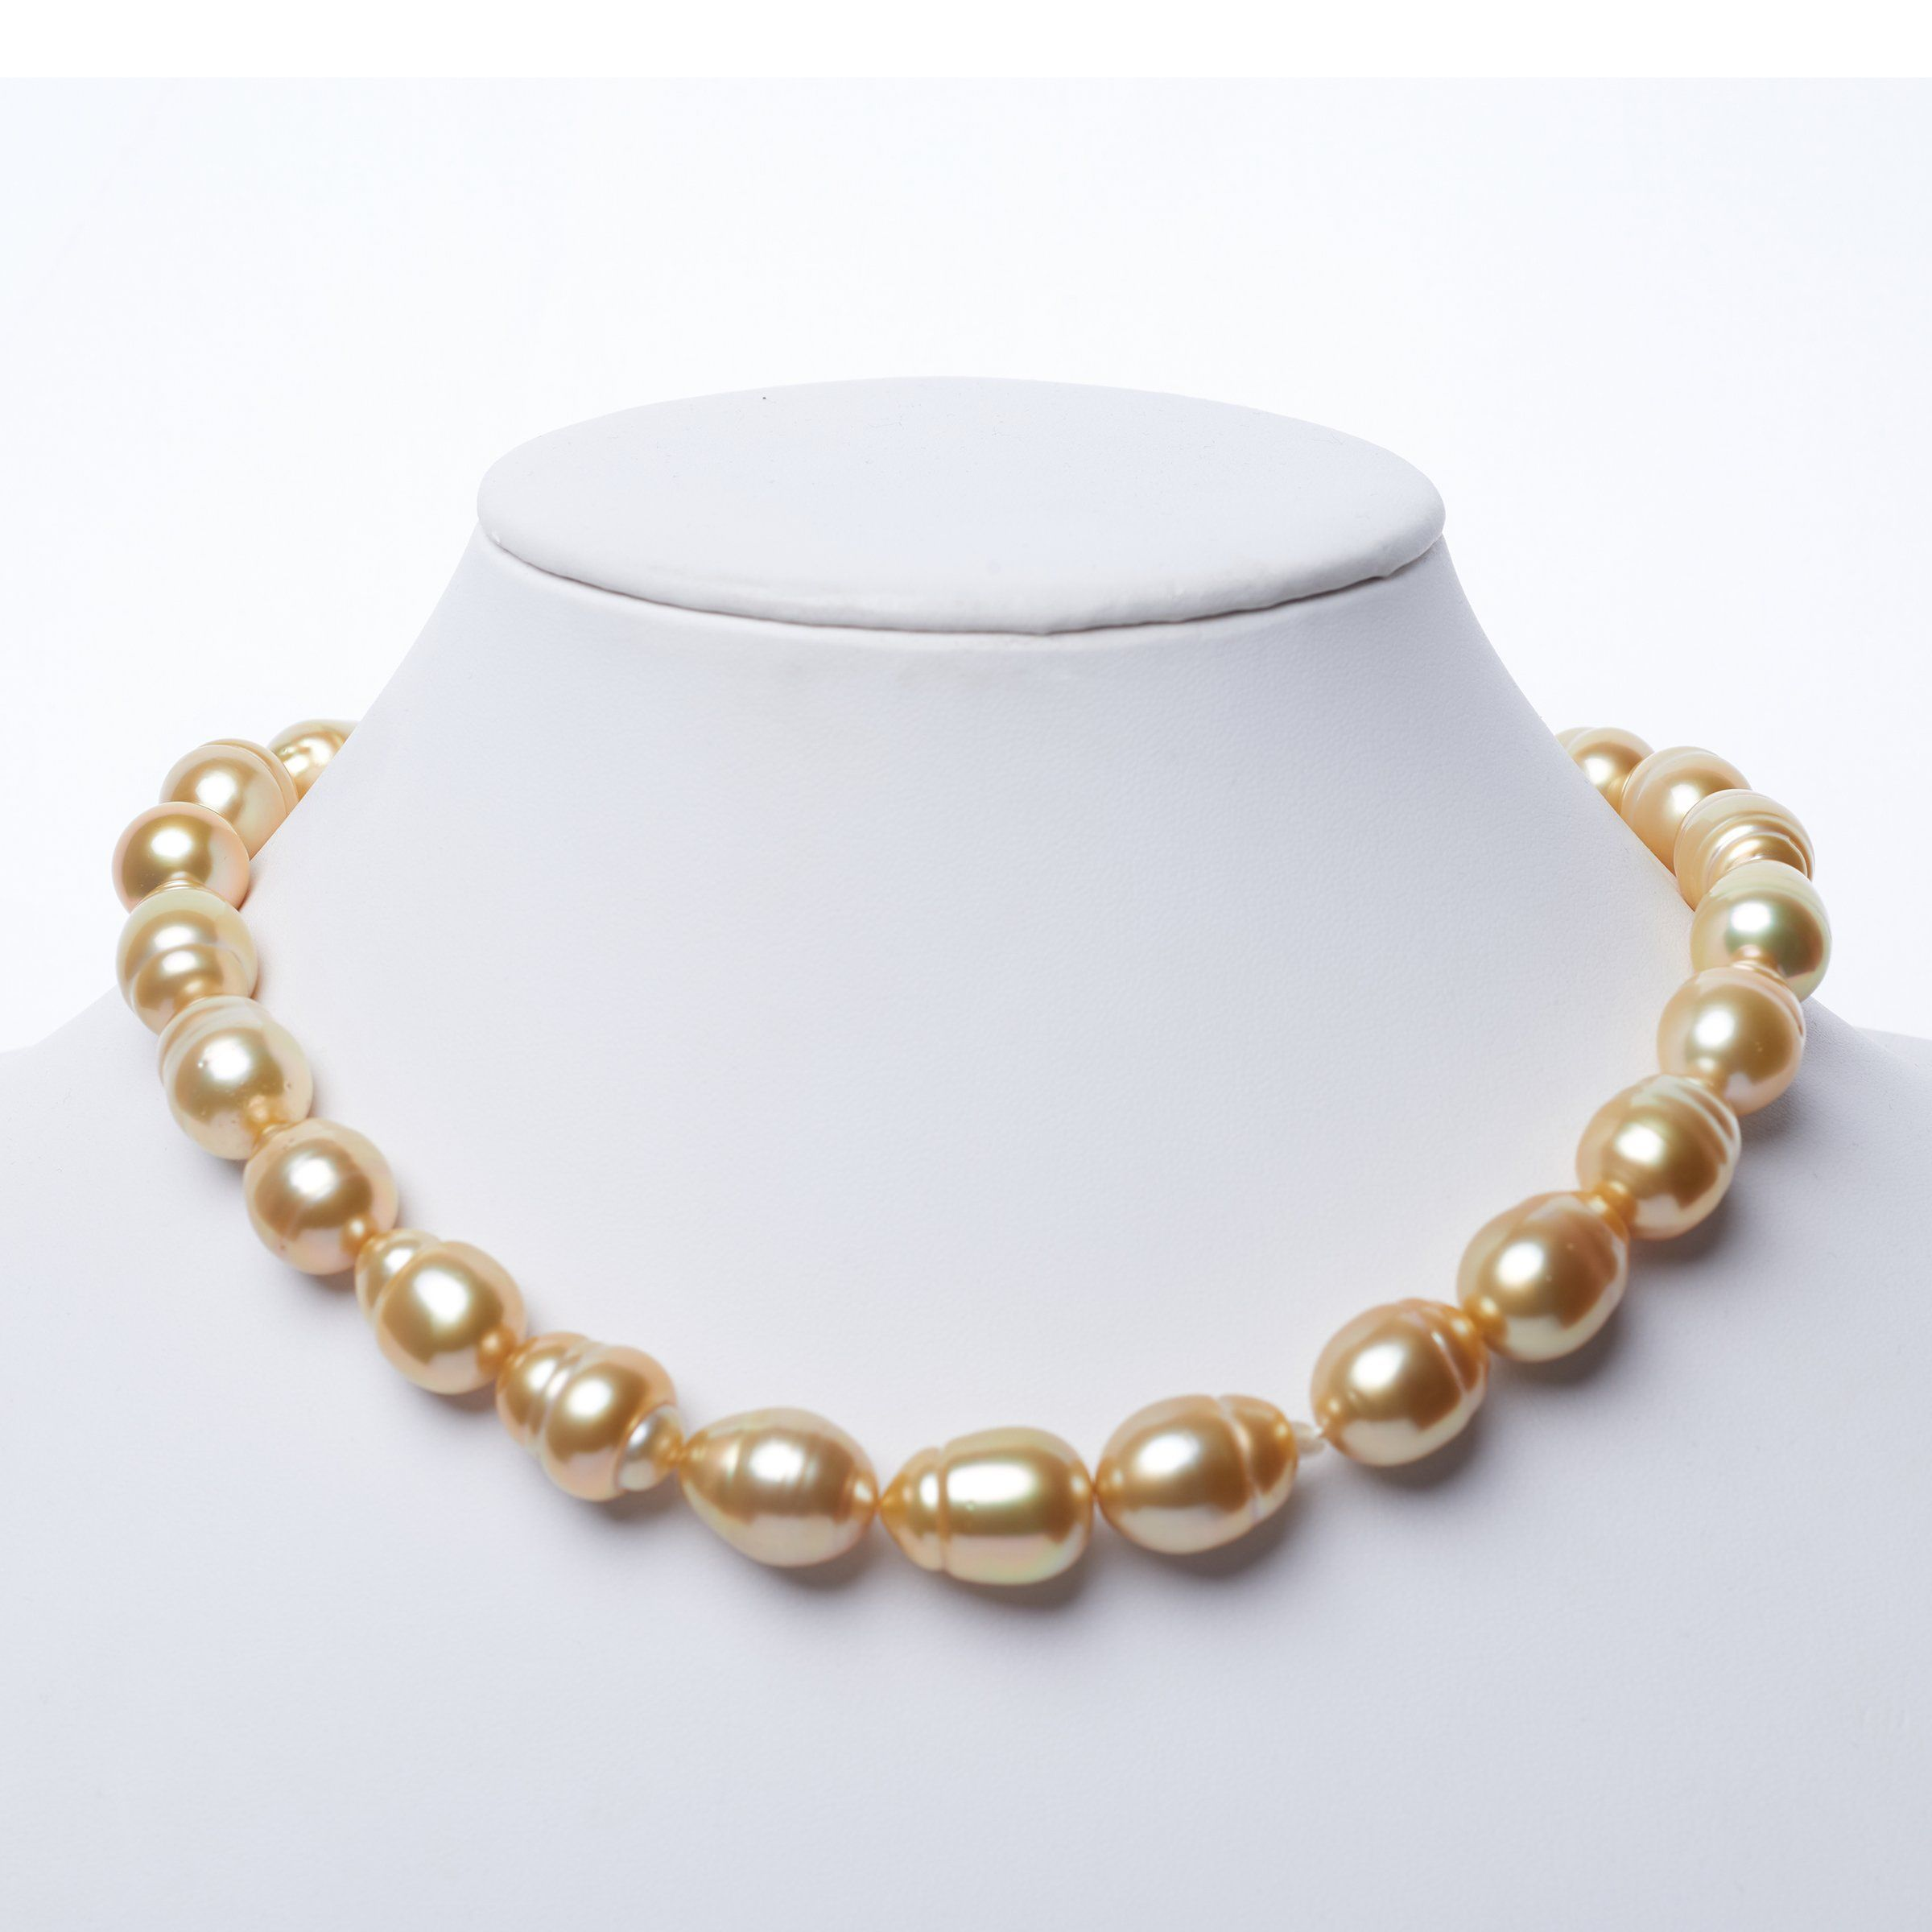 12.11-13.99 mm Golden South Sea Baroque Necklace